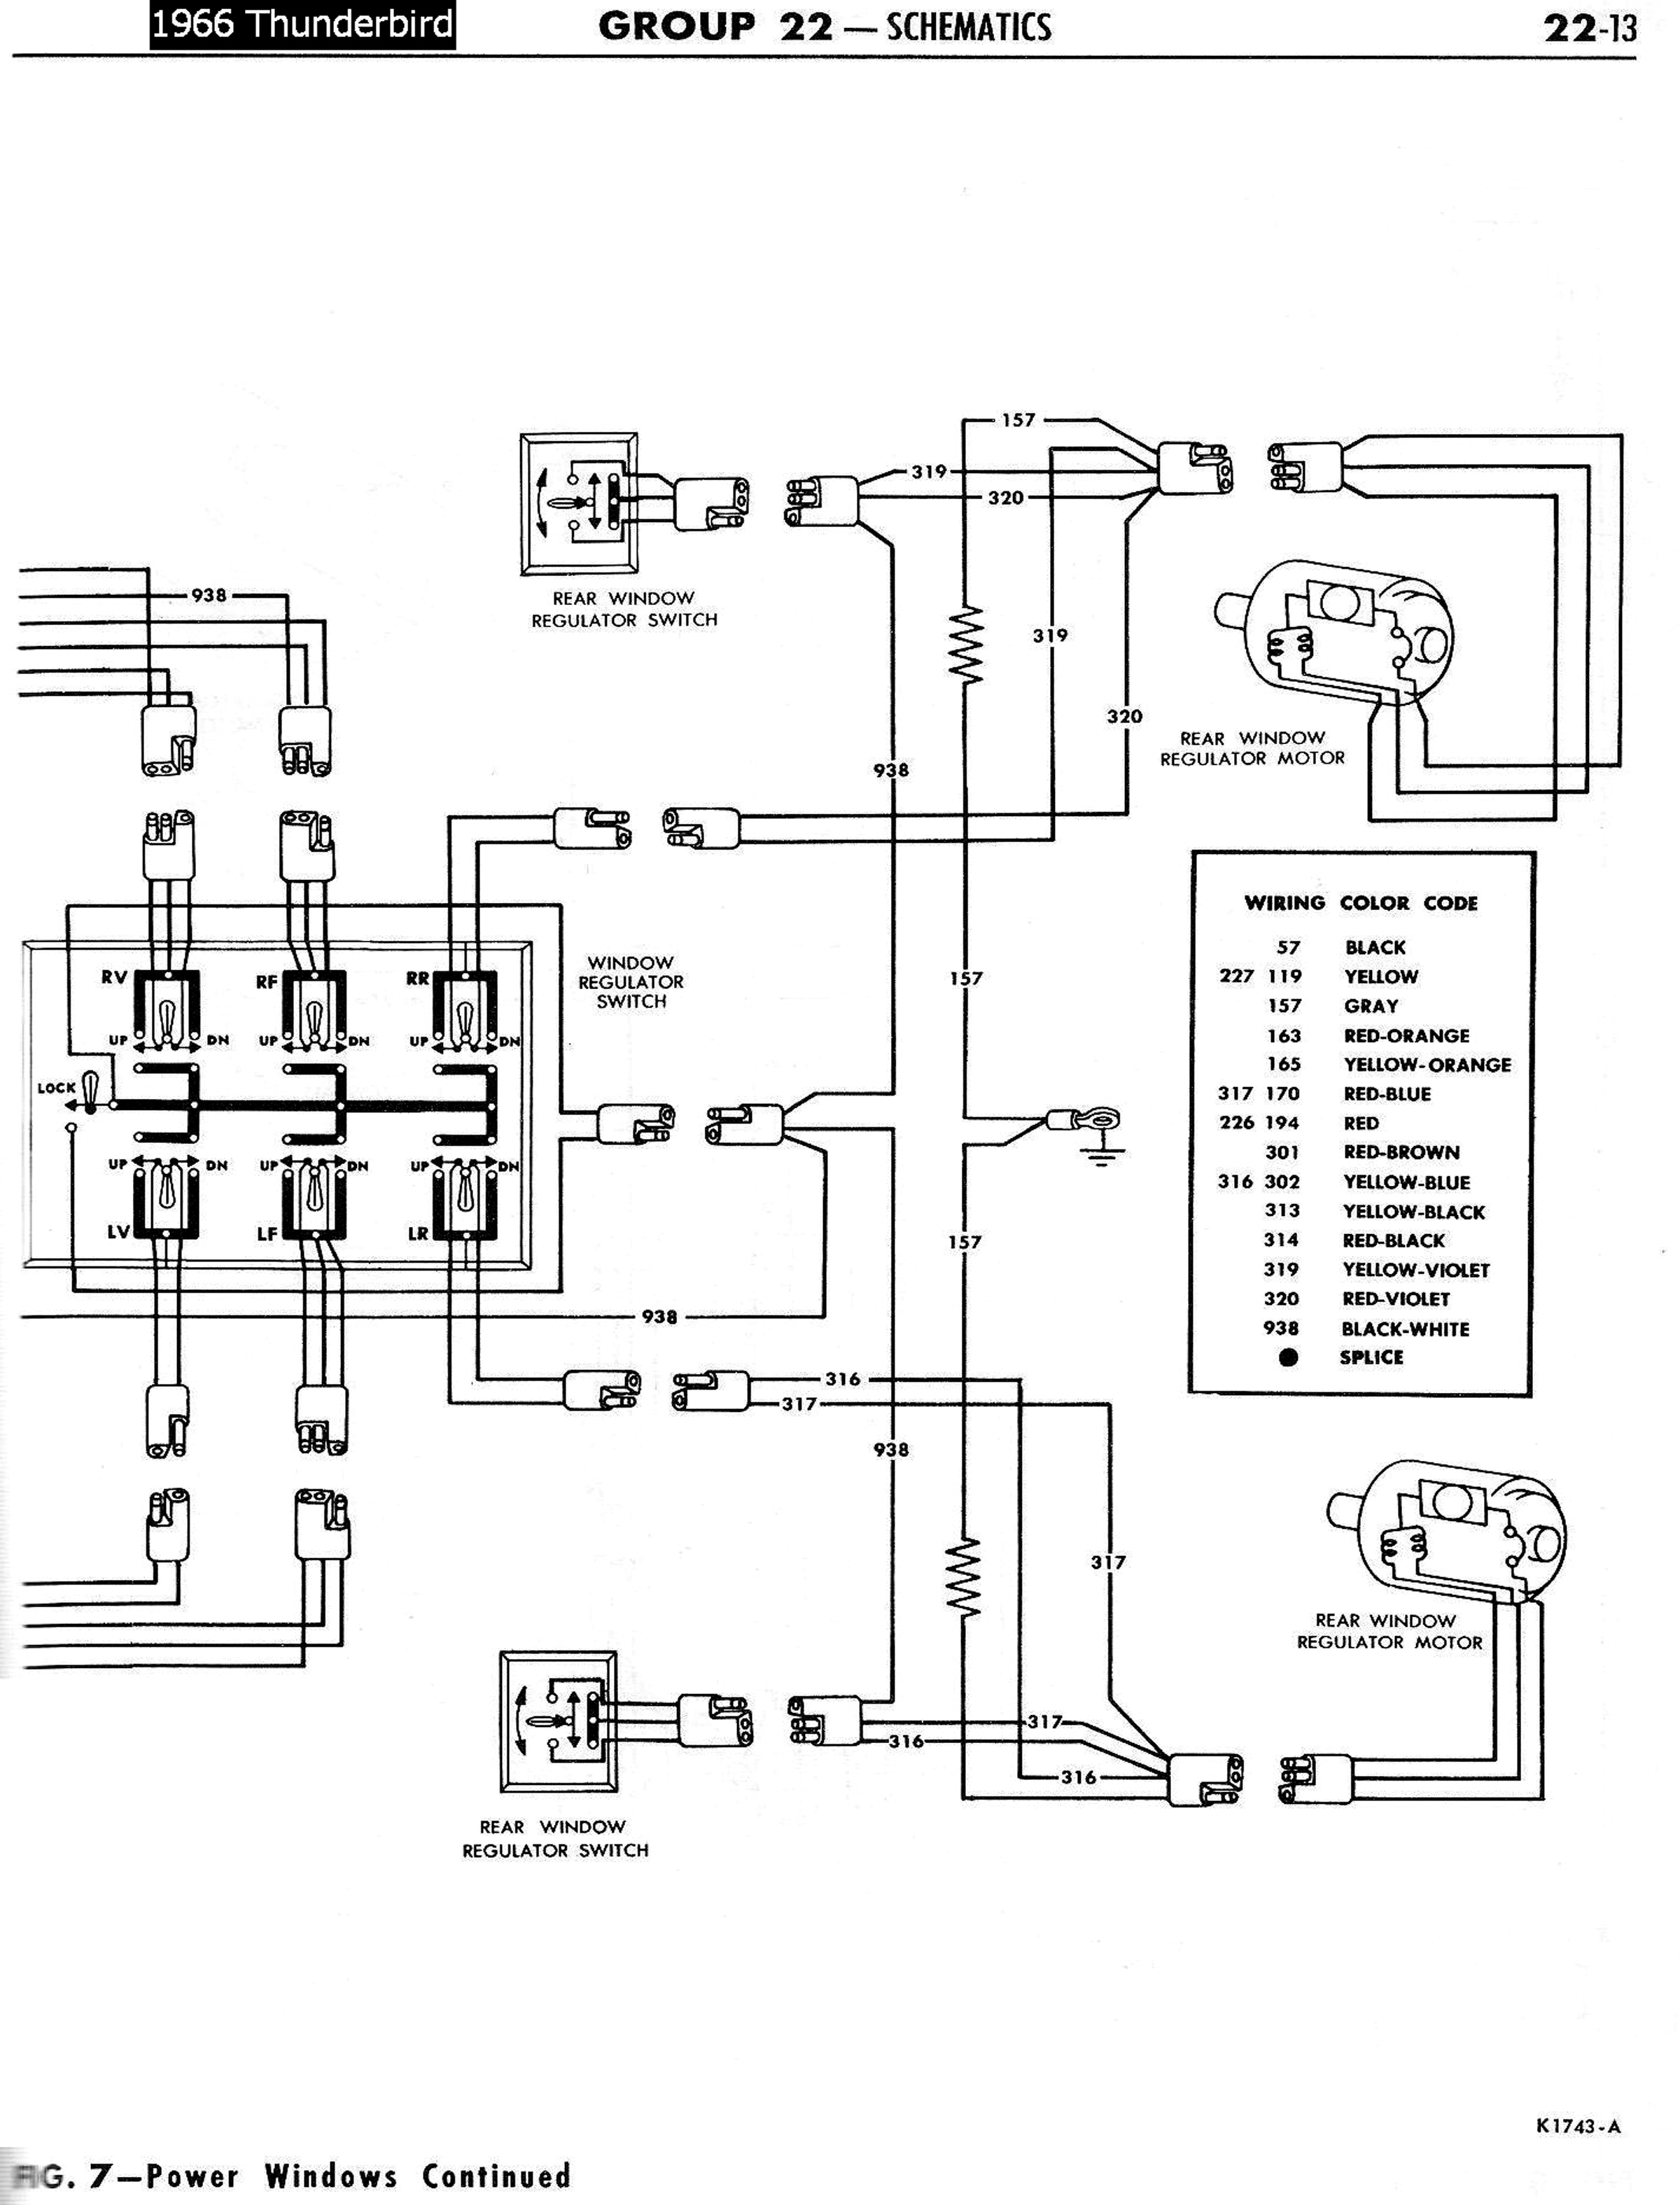 wiring diagram for aftermarket power windows sap 3 tier architecture 57 t bird window free engine